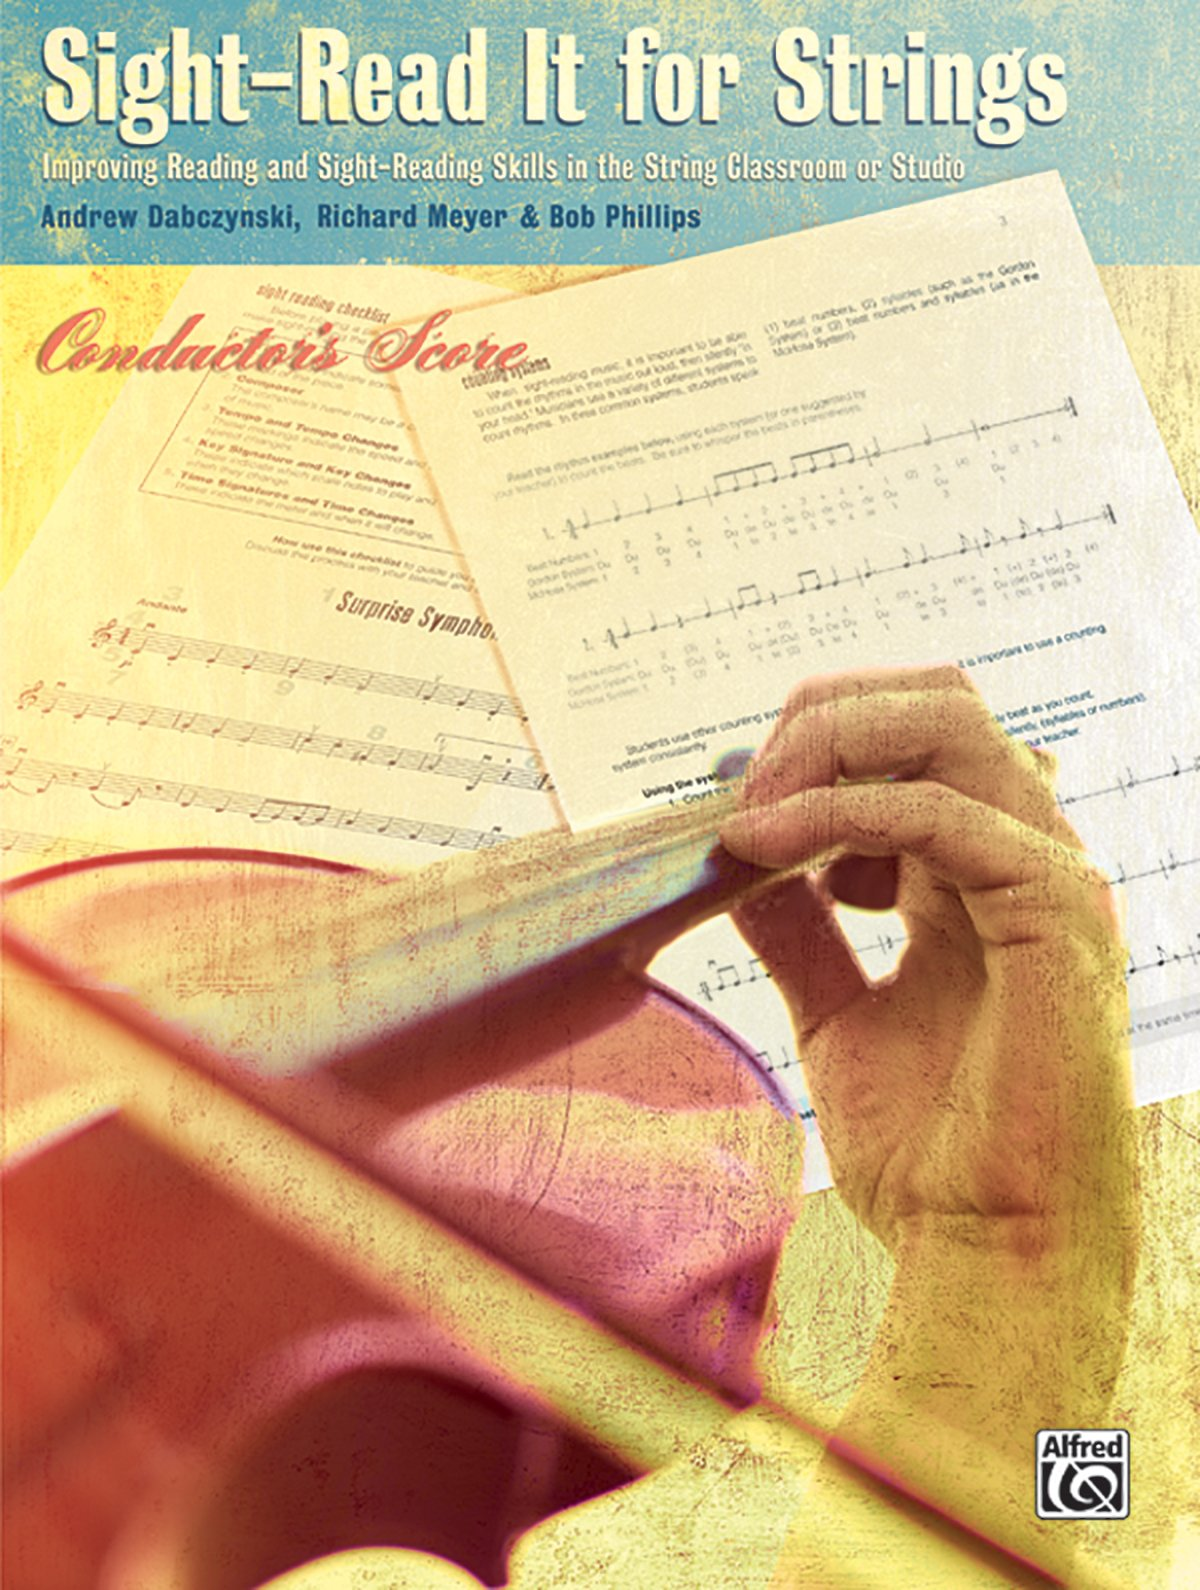 Download Sight-Read It for Strings: Conductor's Score pdf epub